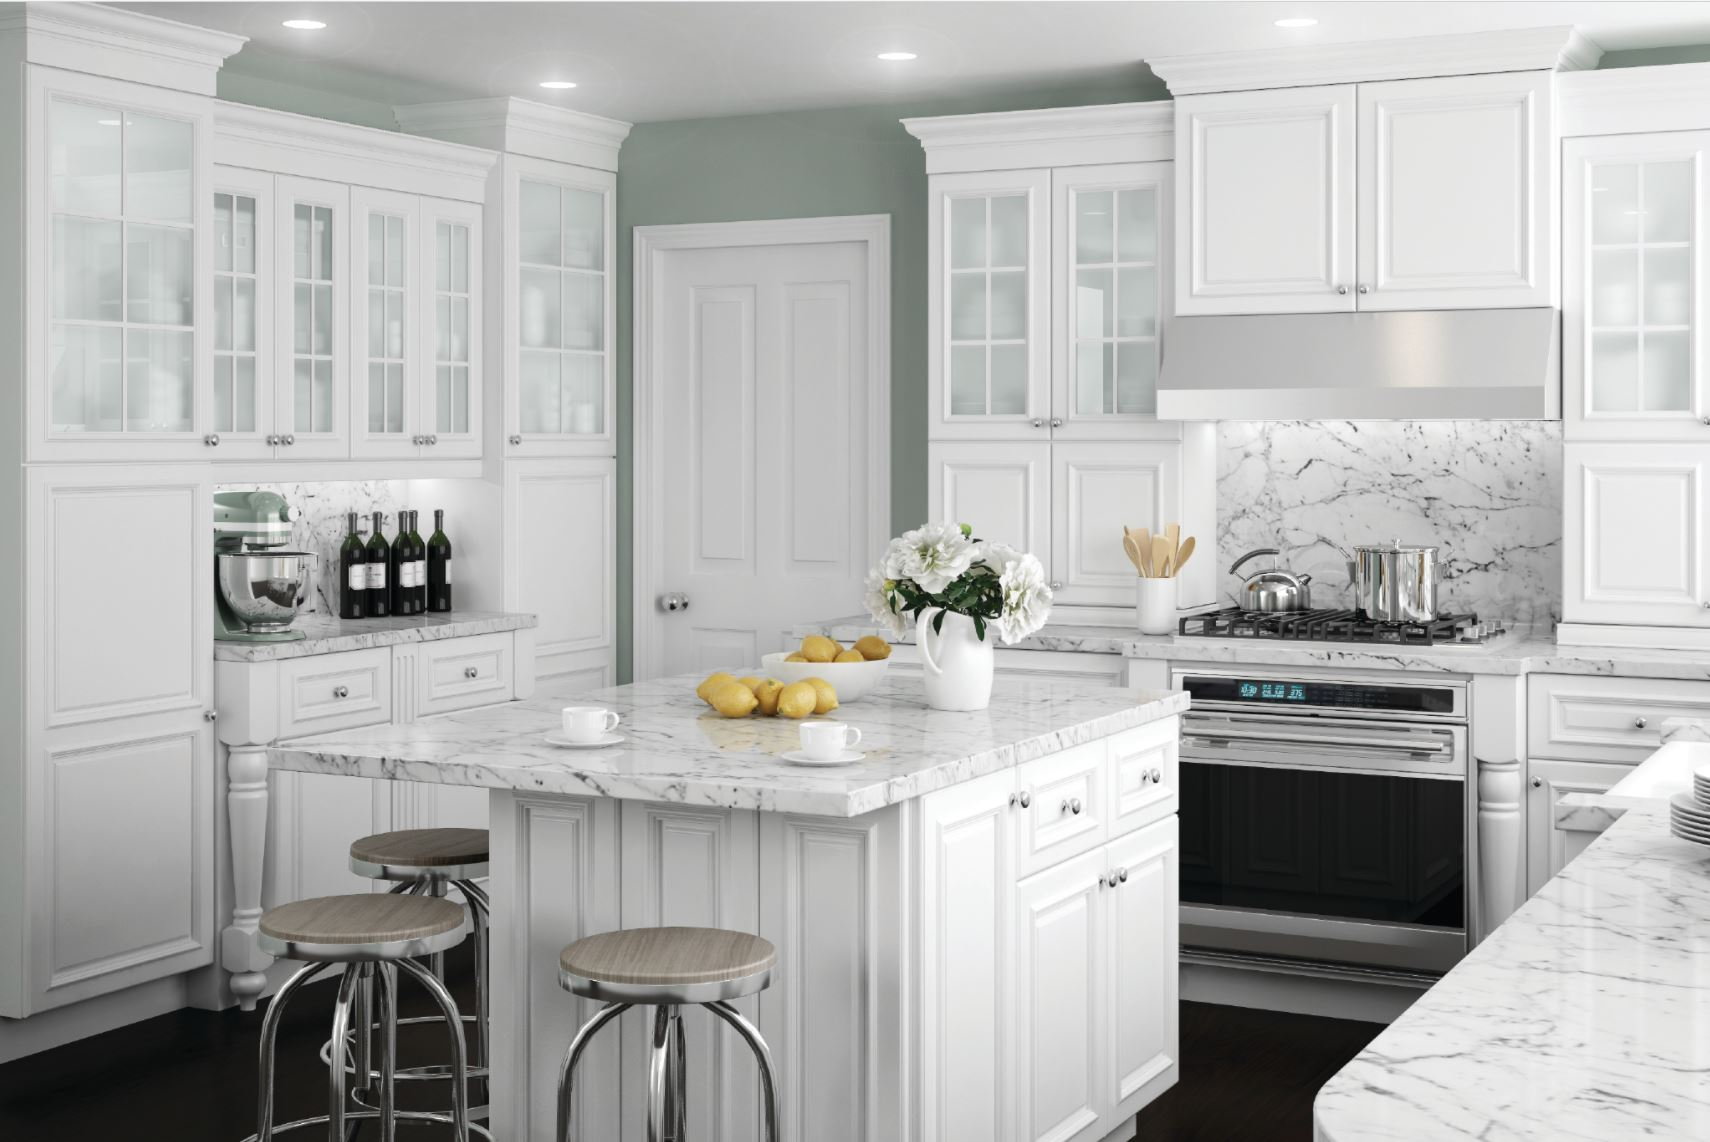 10x10 White Kitchen Cabinets Coventry Cabinet Accessories In Pacific White Kitchen